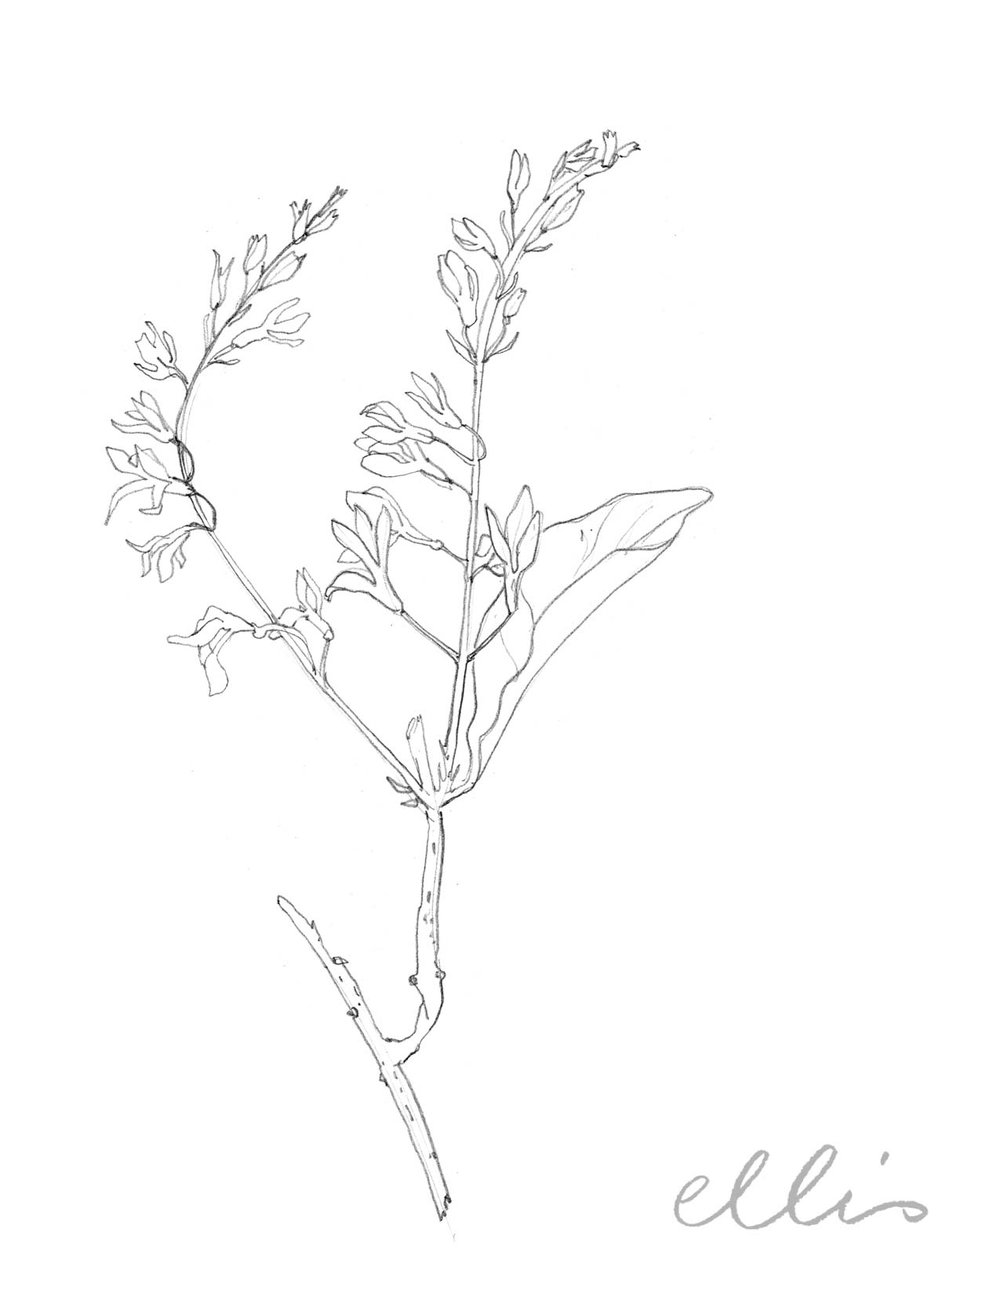 Erin Ellis_100 days project botanical drawings_2013-92.jpg